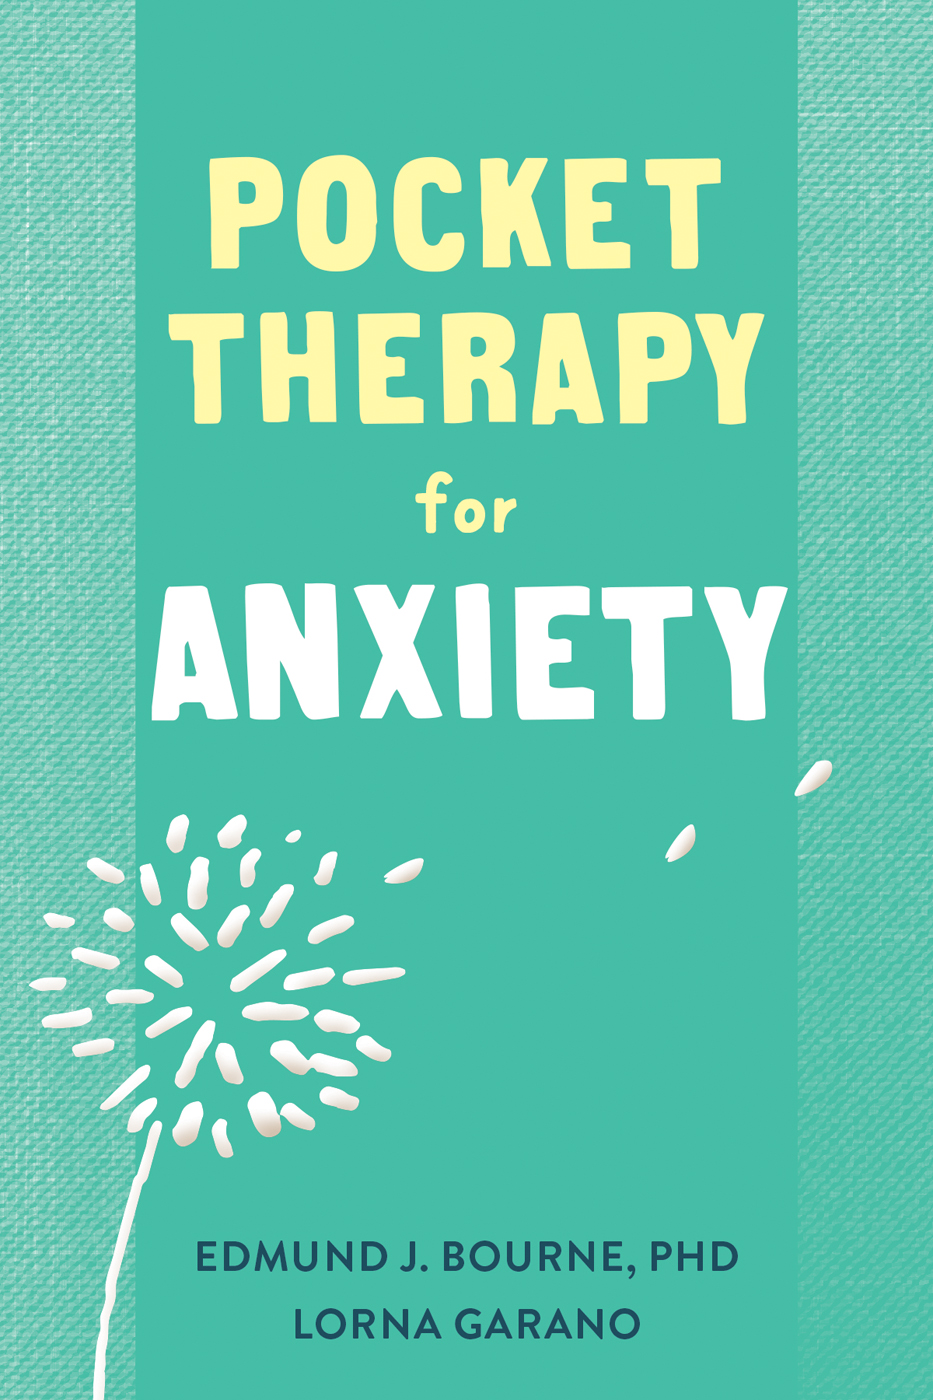 [PDF] [EPUB] Pocket Therapy for Anxiety: Quick CBT Skills to Find Calm Download by Edmund J. Bourne